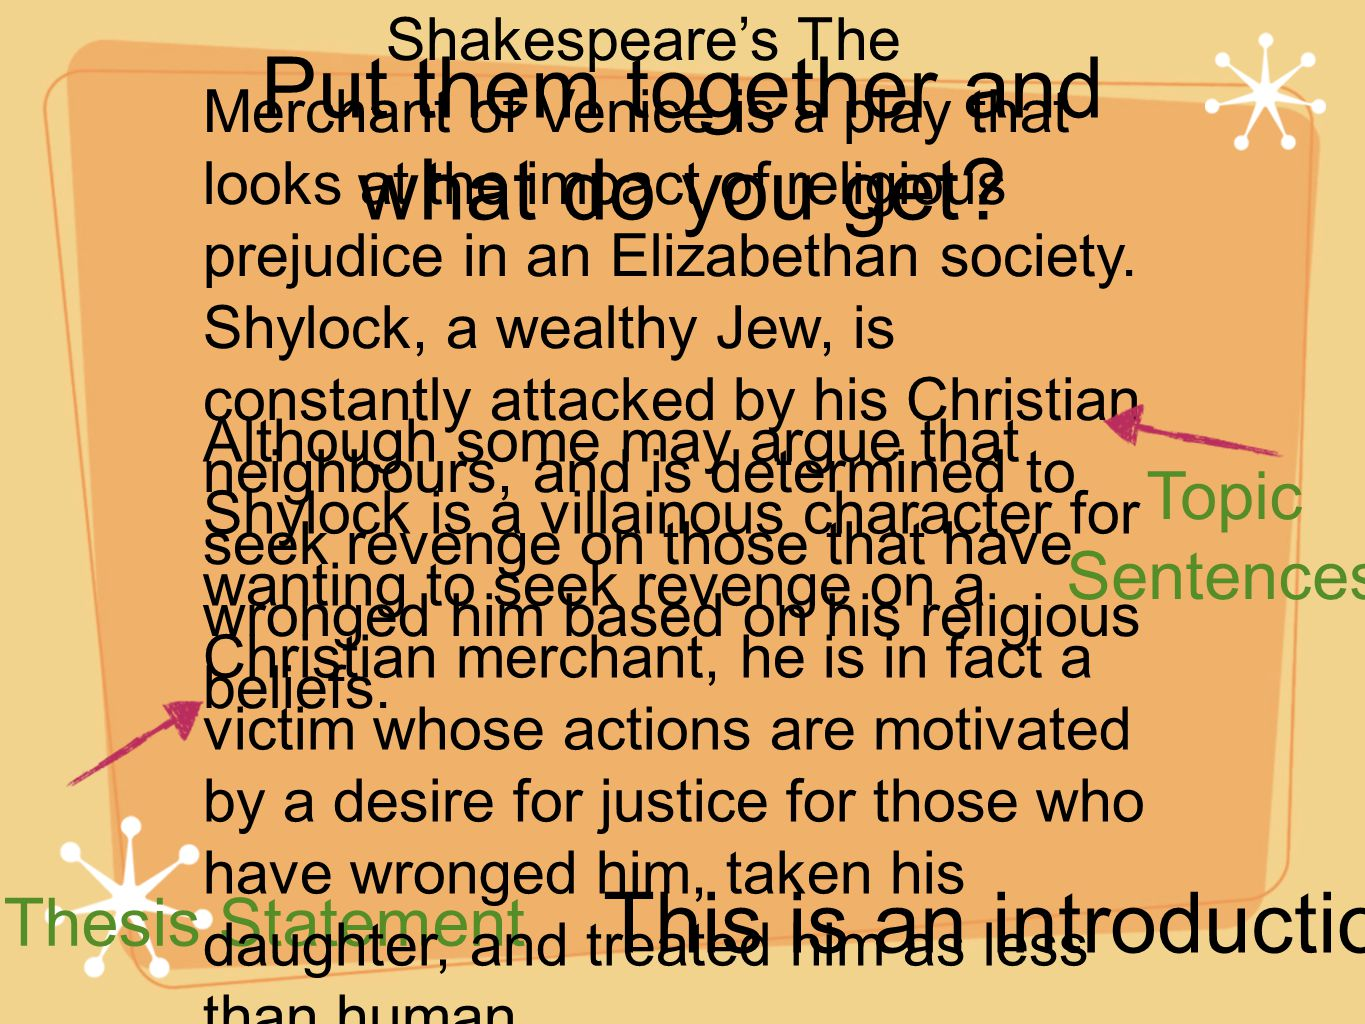 jew in a christian society essay The merchant of venice (vol 53) - essay  was an attempt to exert power over various members of society thus, in the merchant of venice,shylock does his  the other jew in the merchant of.